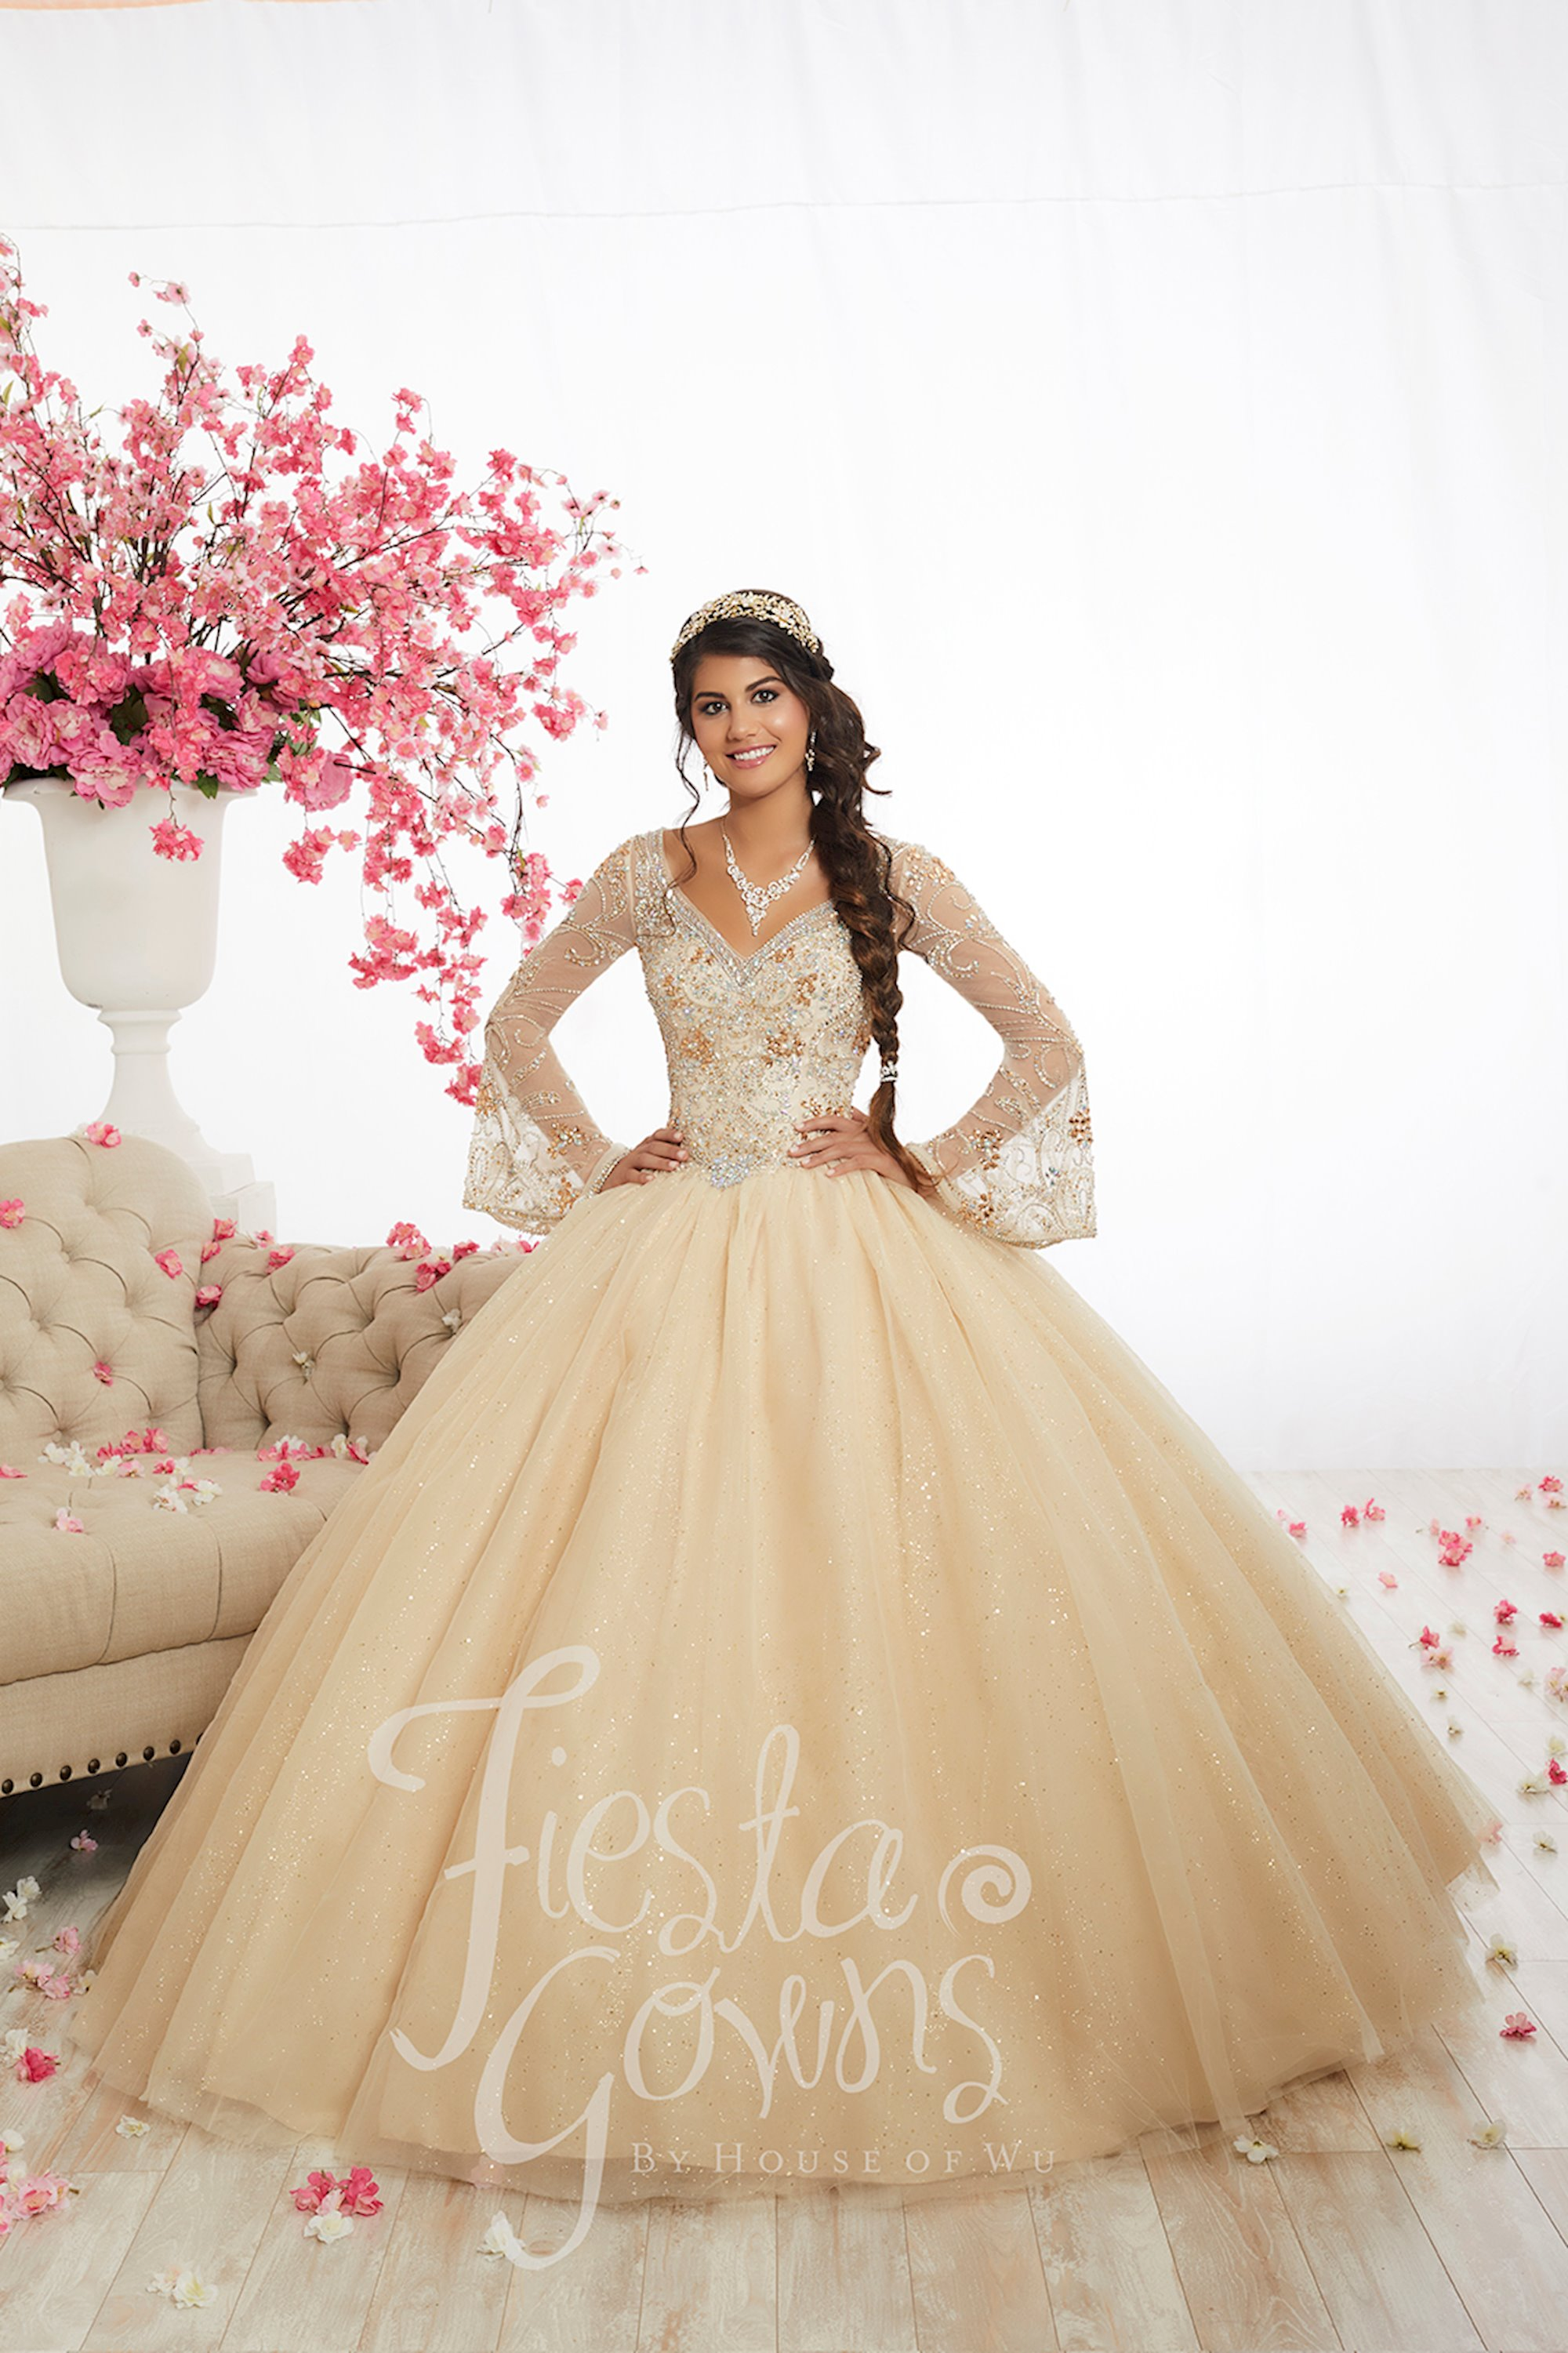 Fiesta Gowns - 56346 | The Ultimate